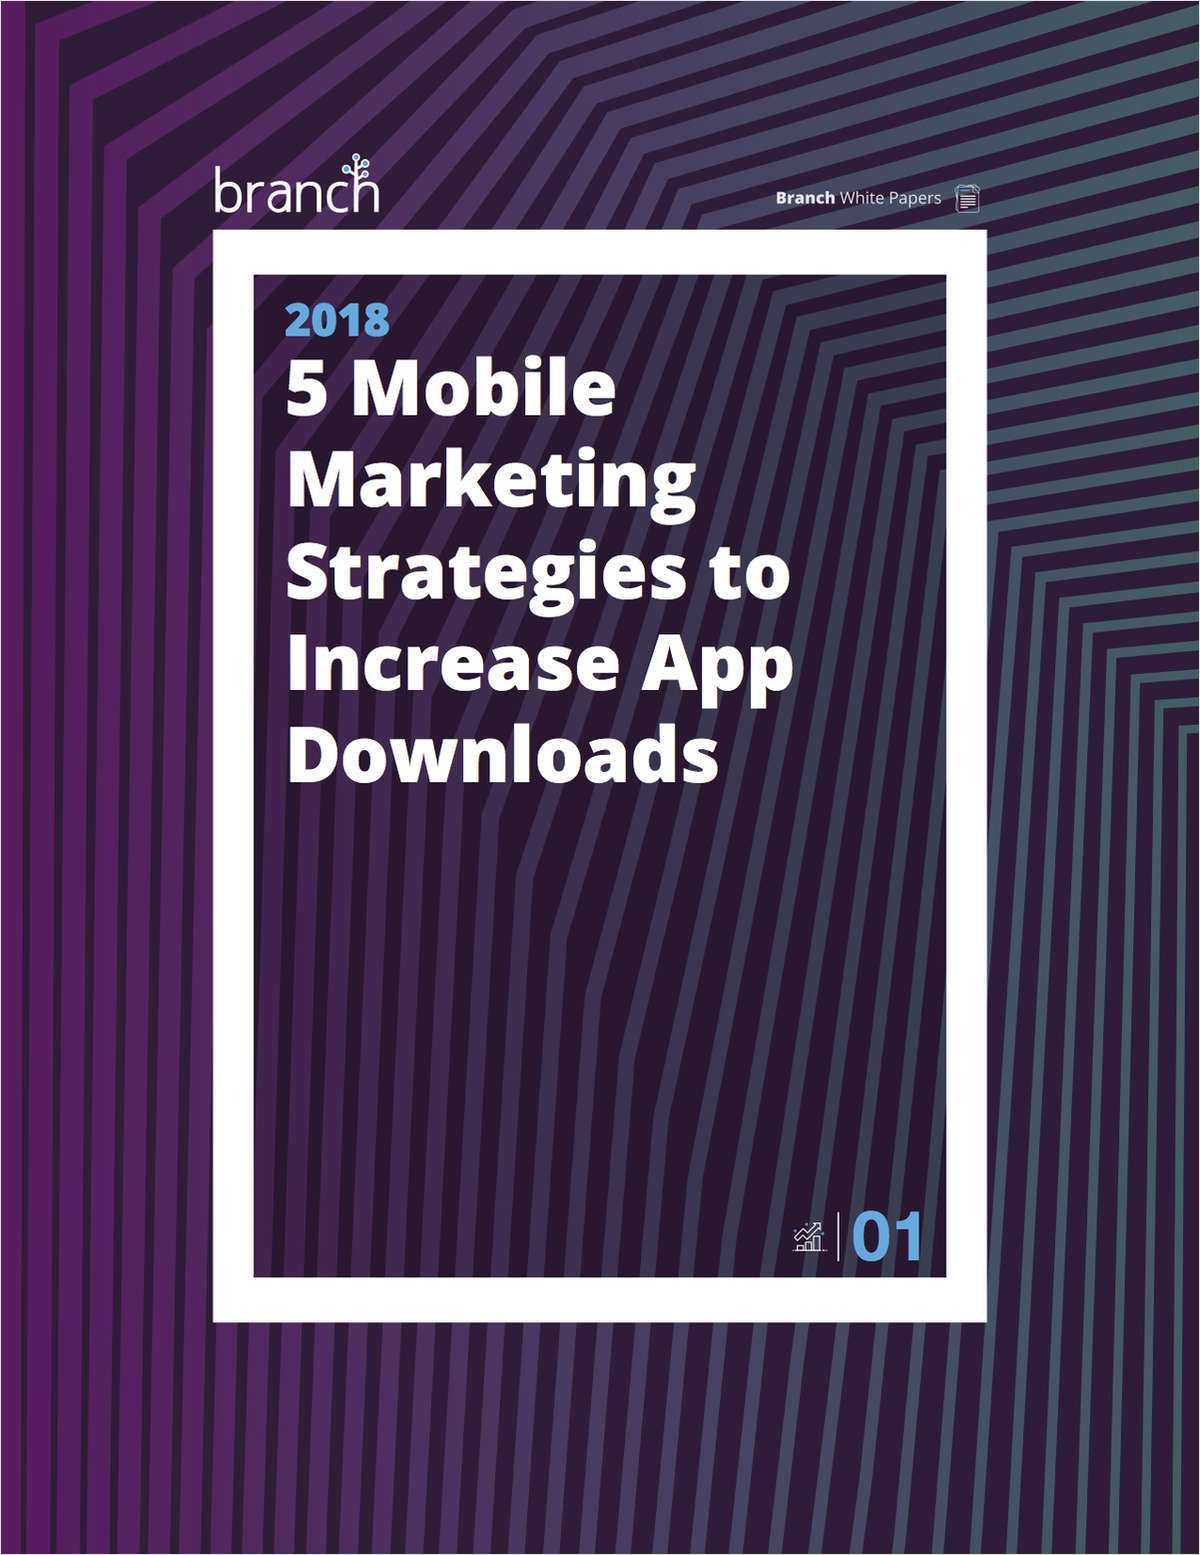 5 Mobile Marketing Strategies to Increase App Downloads